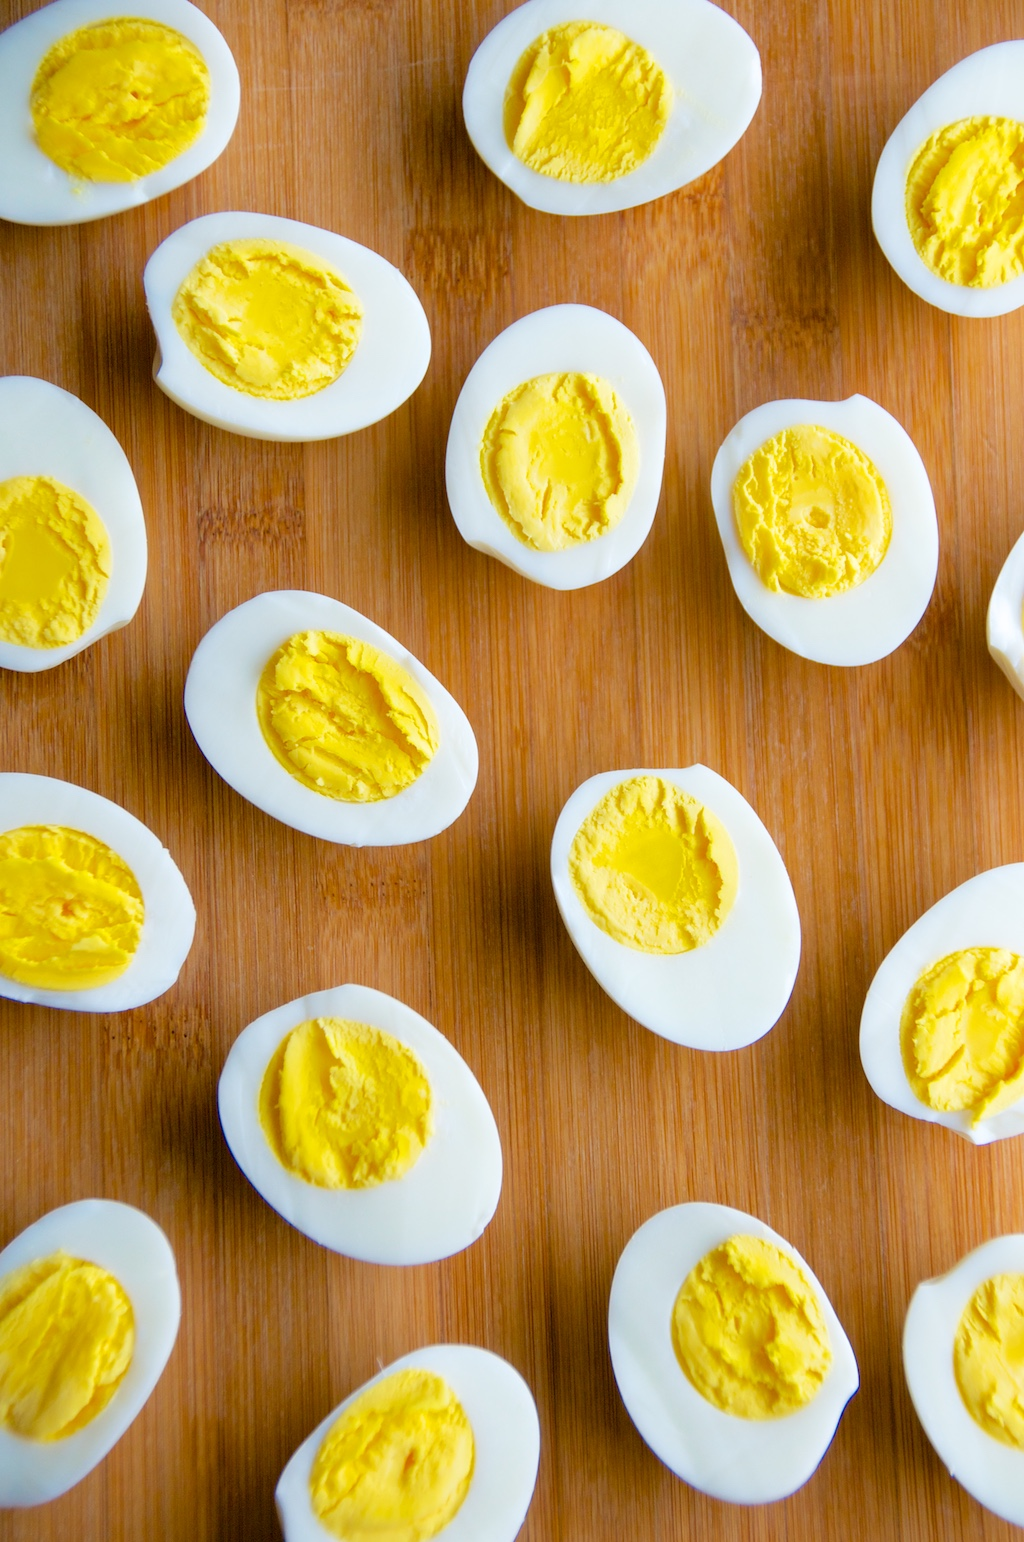 Sliced hard boiled eggs